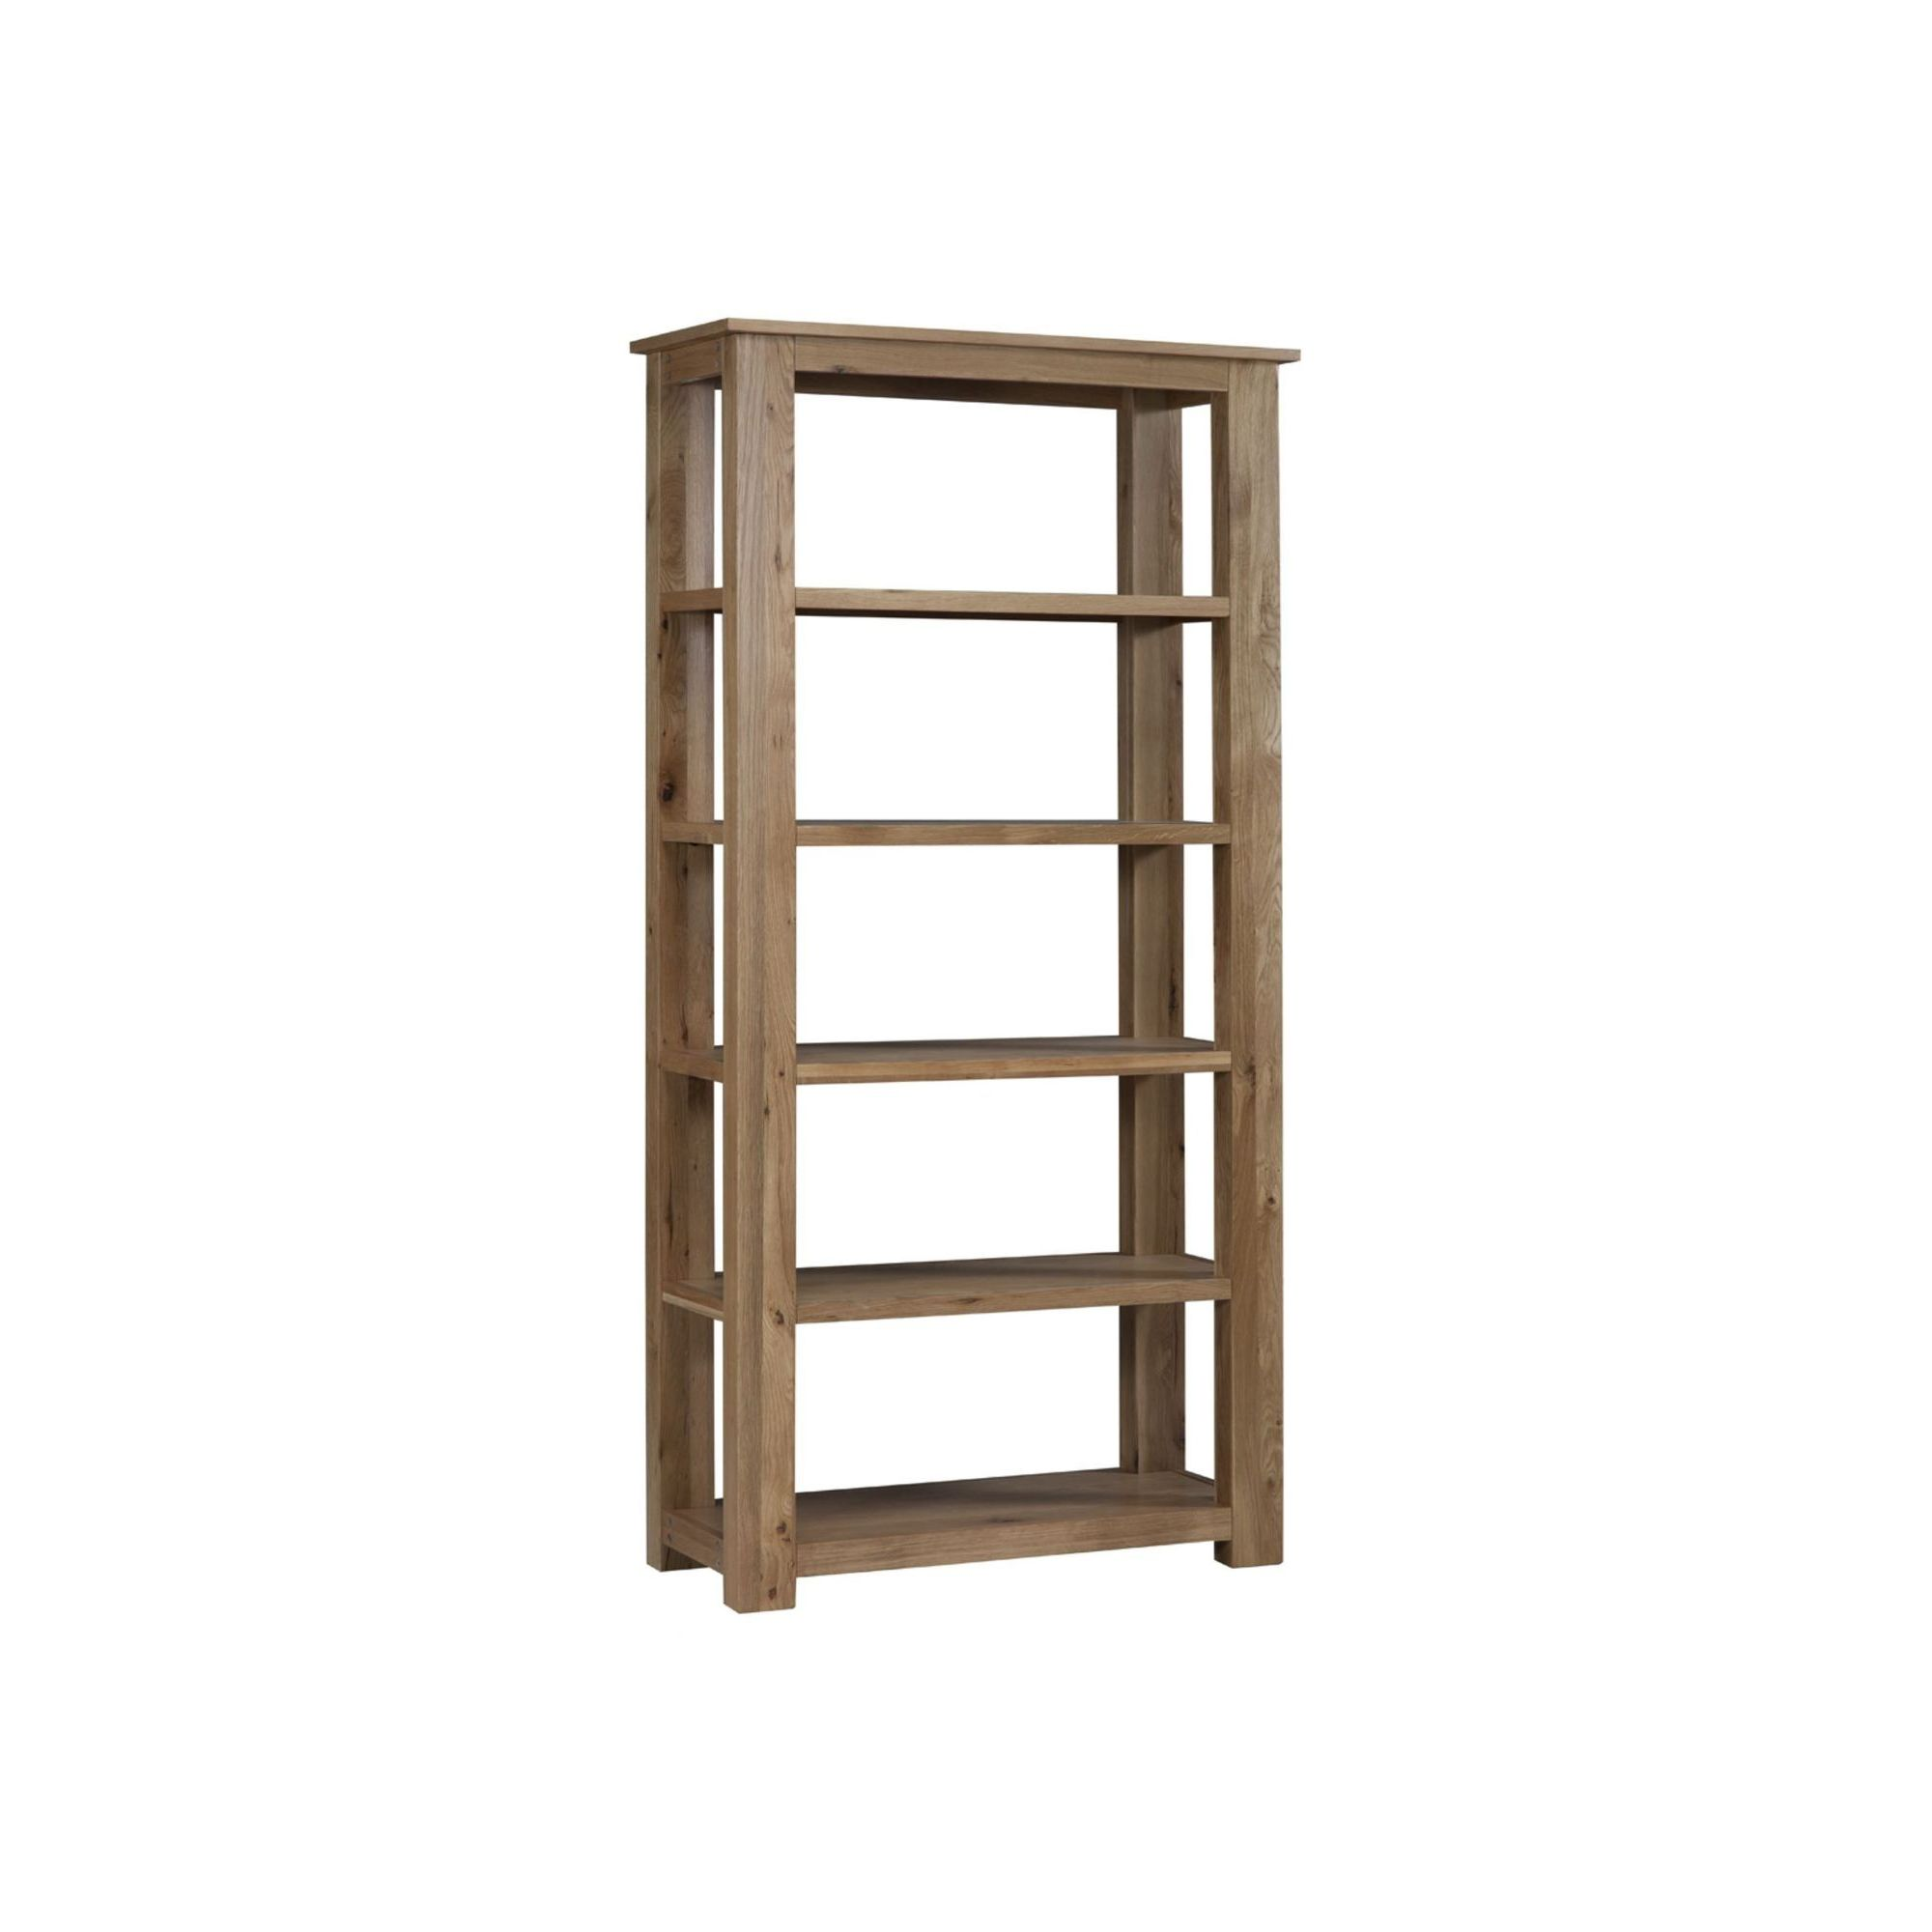 Kelburn Furniture Lyon 5 Shelves Bookcase in Light Oak Matt Lacquer at Tesco Direct